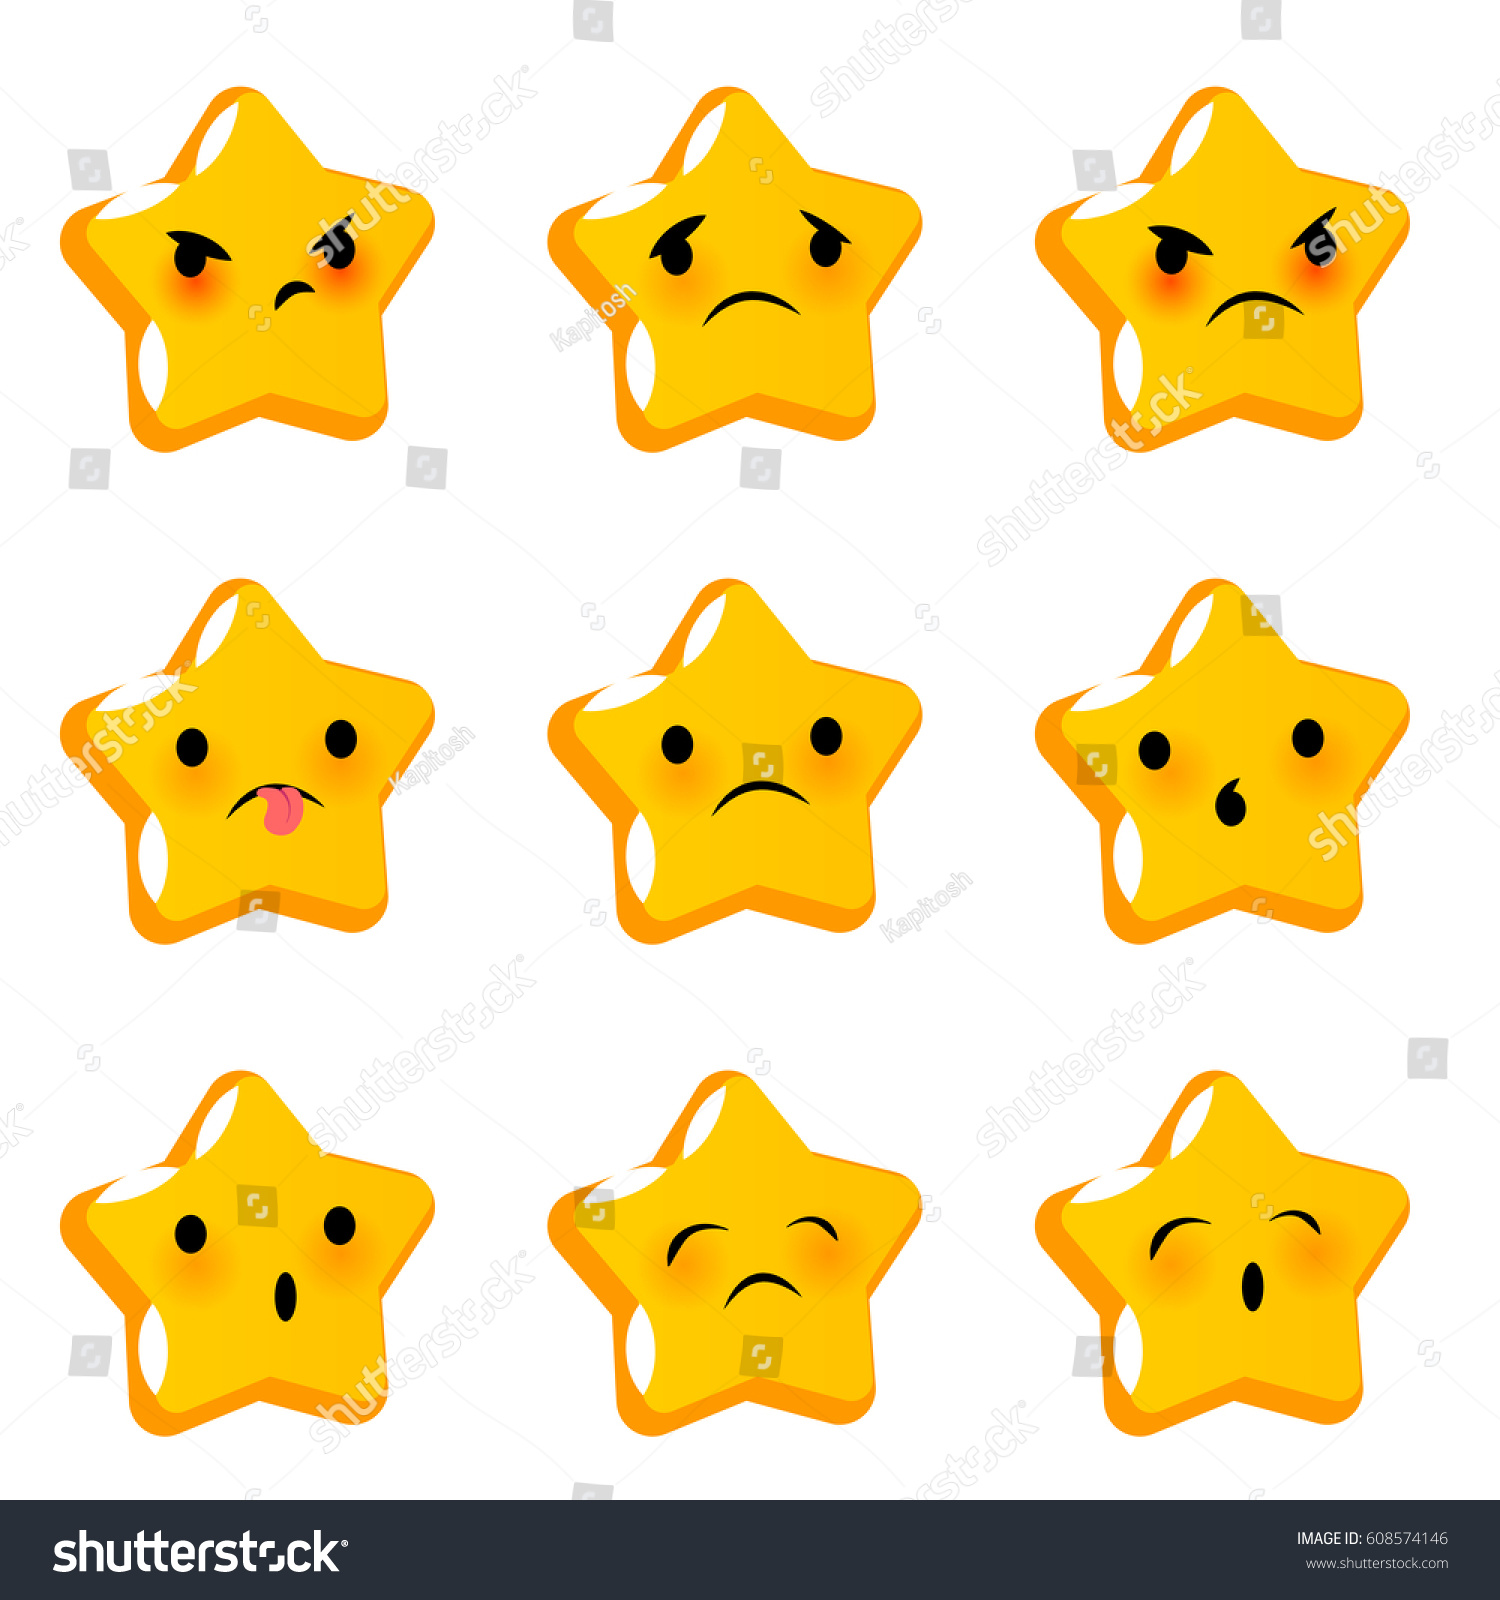 Royalty Free Face Emoji Yellow Icon Emotional Star 608574146 Stock